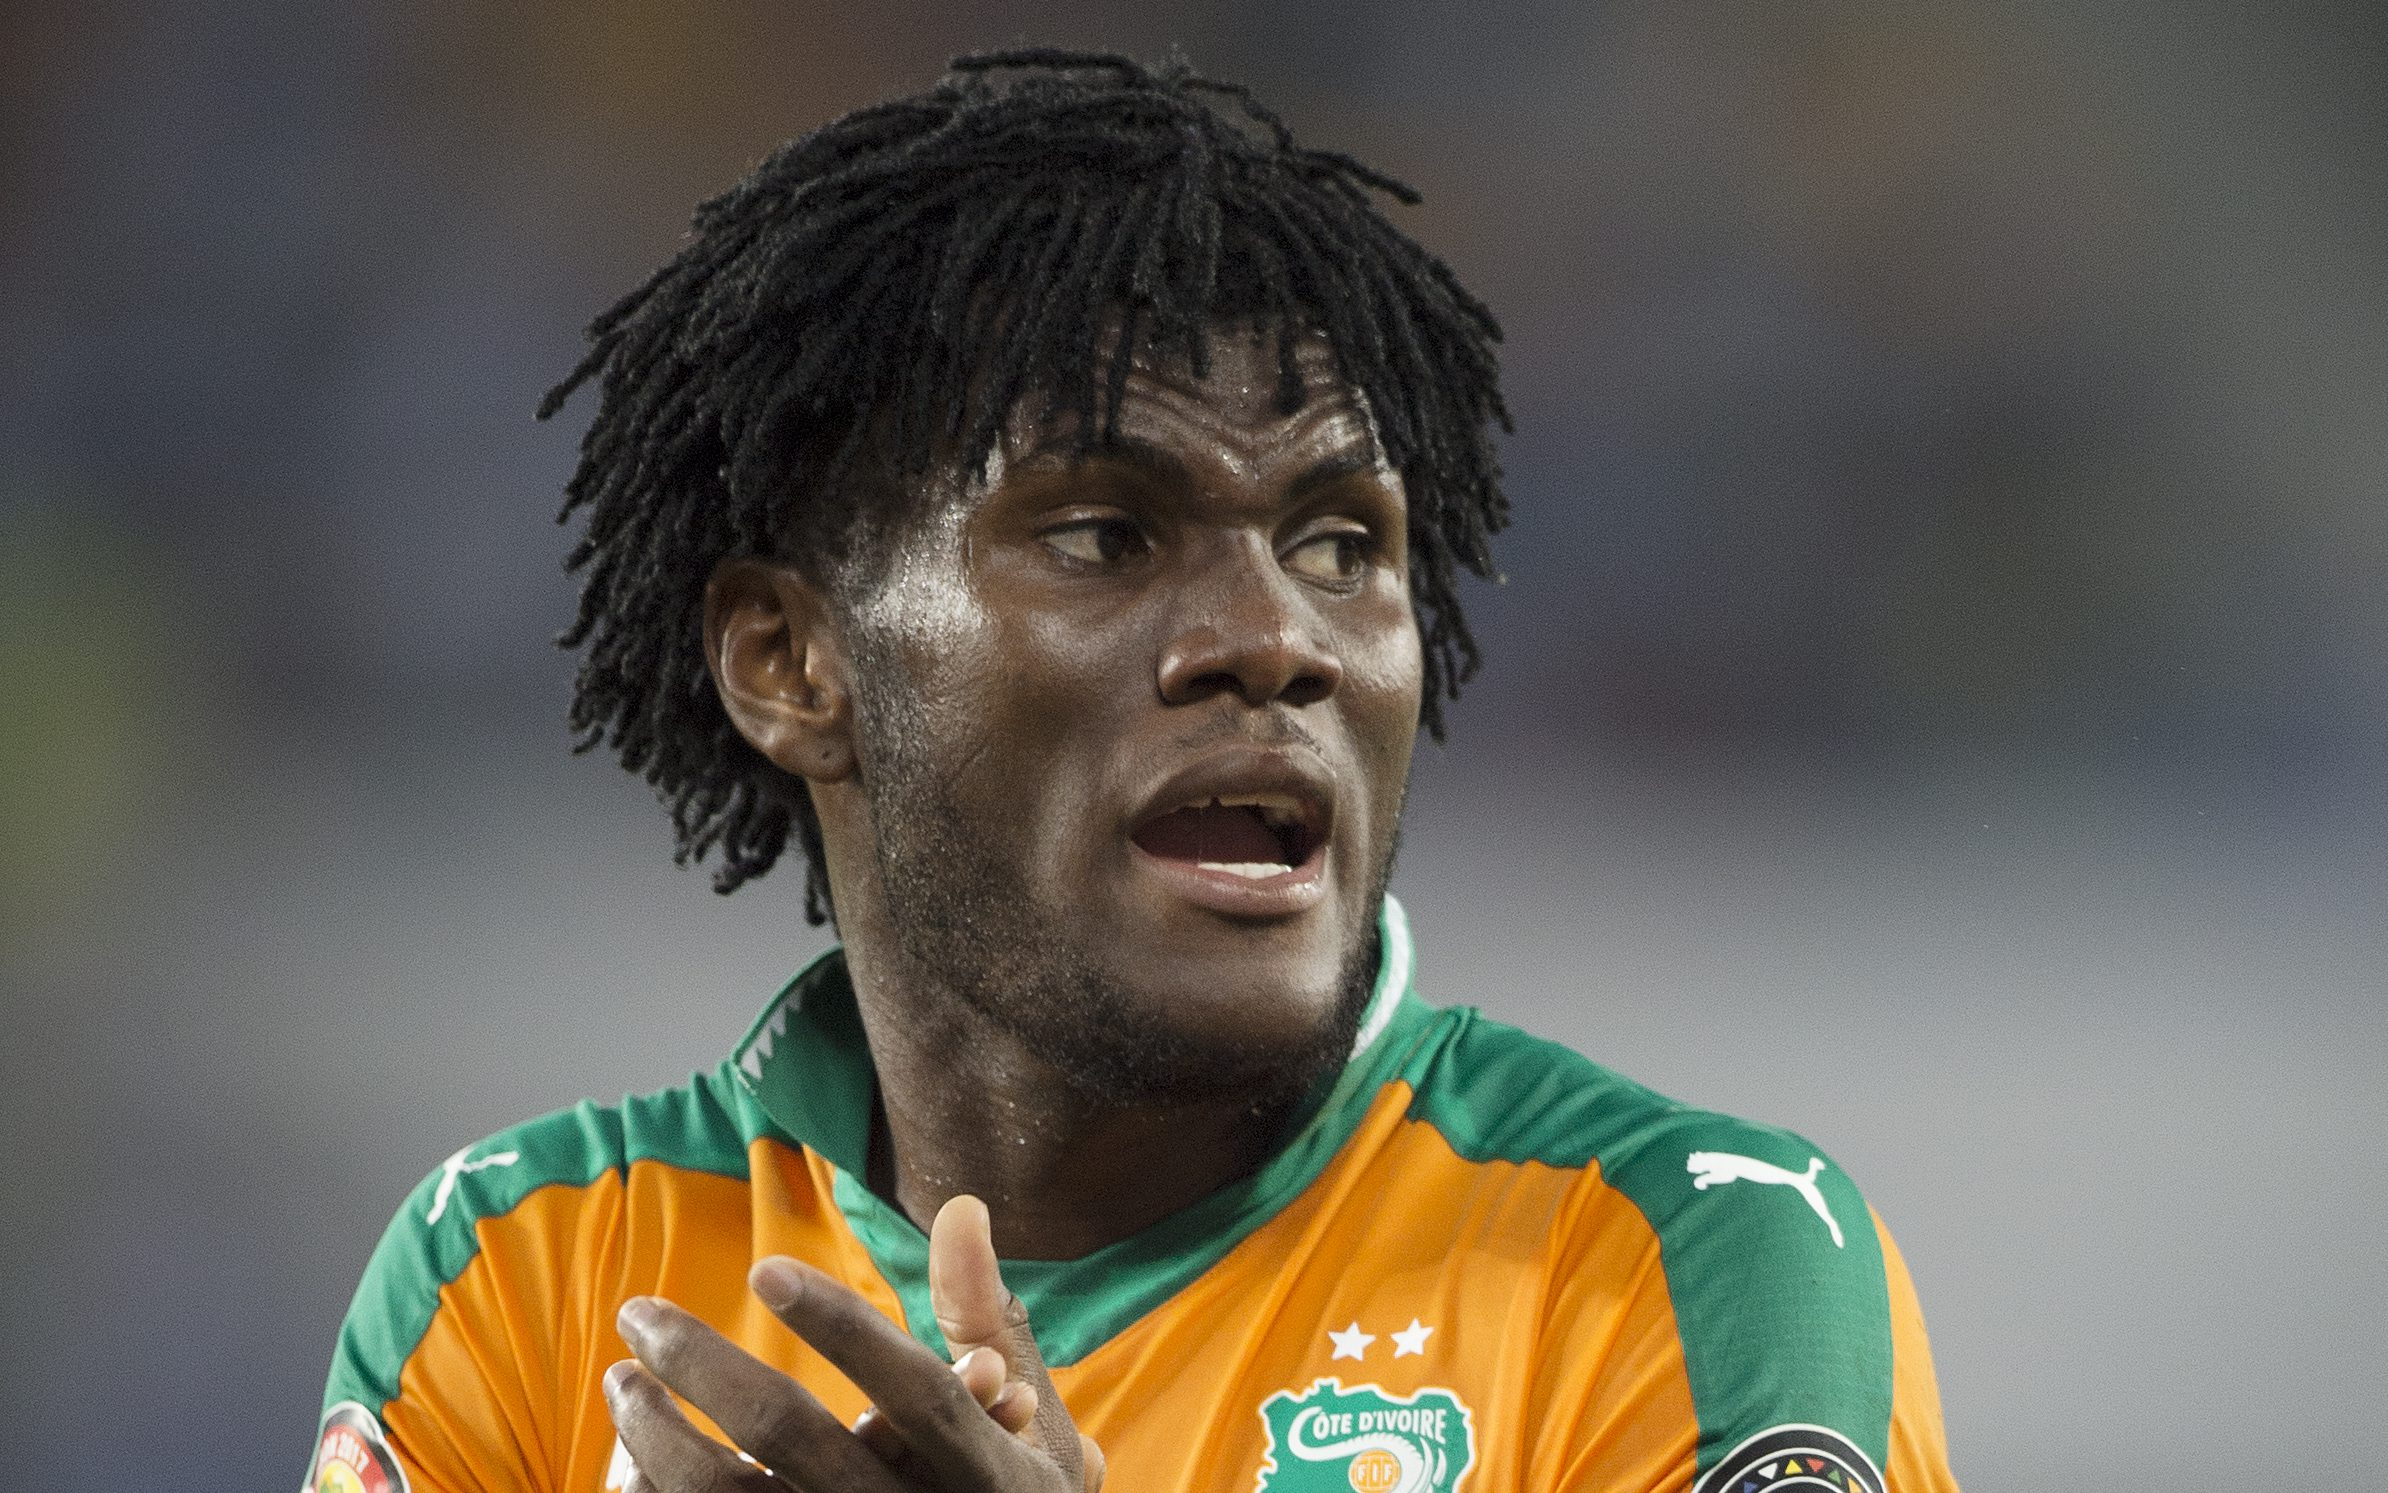 OYEM, GABON - JANUARY 20: FRANCK YANNICK KESSIE of Ivory Coast during the Group C match between Ivory Coast and DR Congo at Stade Oyem on January 20, 2017 in Oyem, Gabon. (Photo by Visionhaus/Corbis via Getty Images)